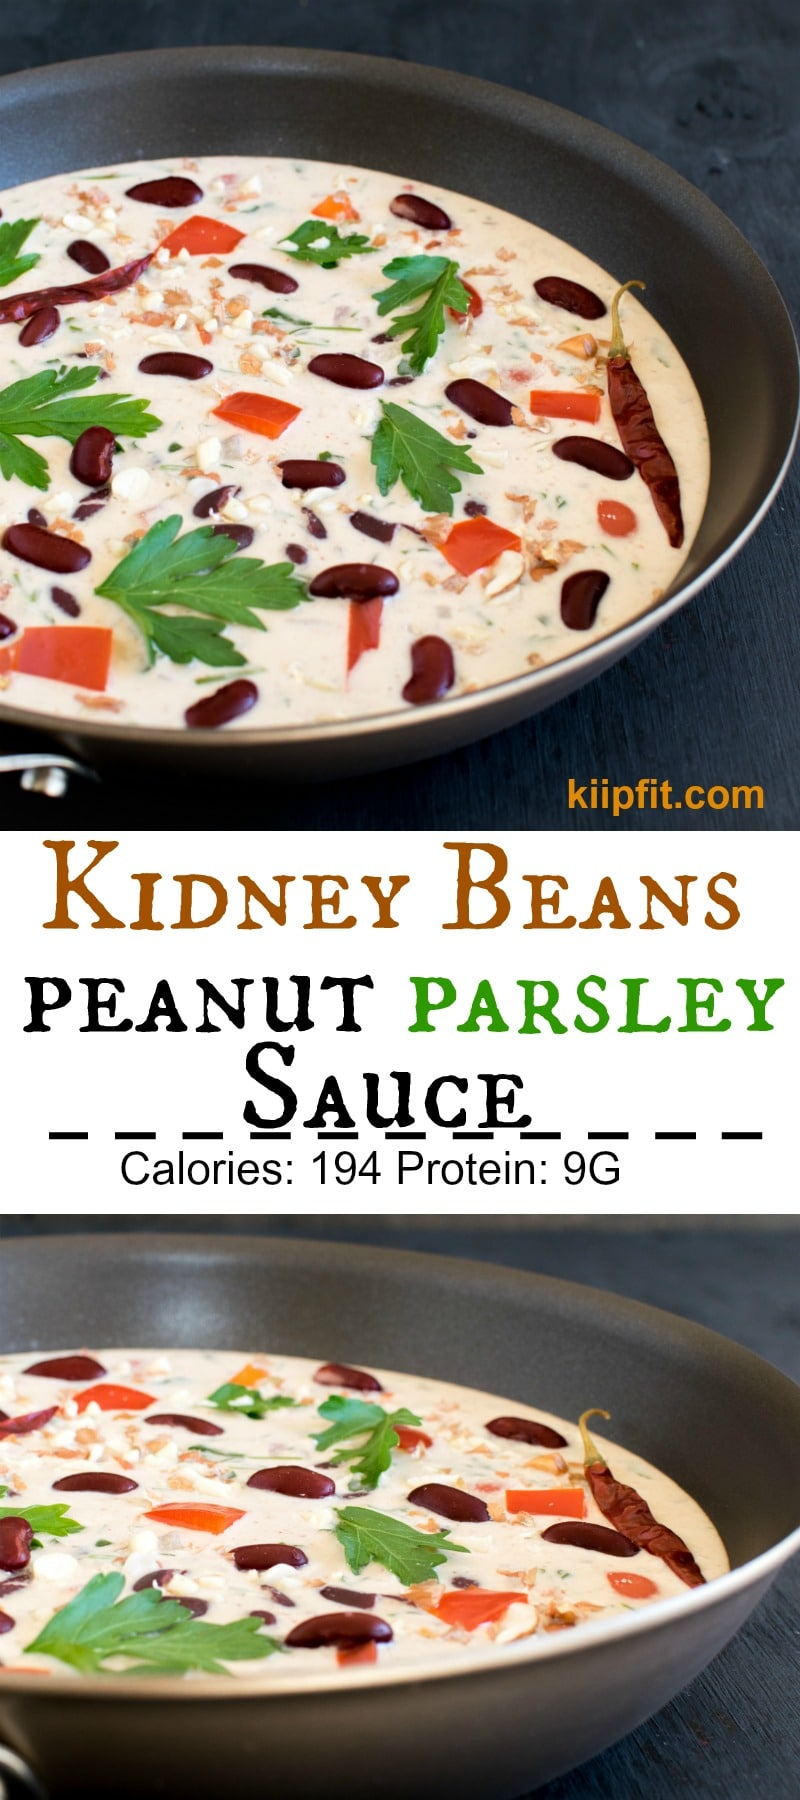 Kidney Beans in Peanut Parsley Sauce is one of my unique creation with outstanding combination of ingredients. It is super flavorful and an absolute pleasure to the taste buds. High in protein and nutritious this entrée is loved by all my family members immensely. Even the leftovers of this entree tastes amazing when paired with brown rice/quinoa [ vegan + GF ] kiipfit.com